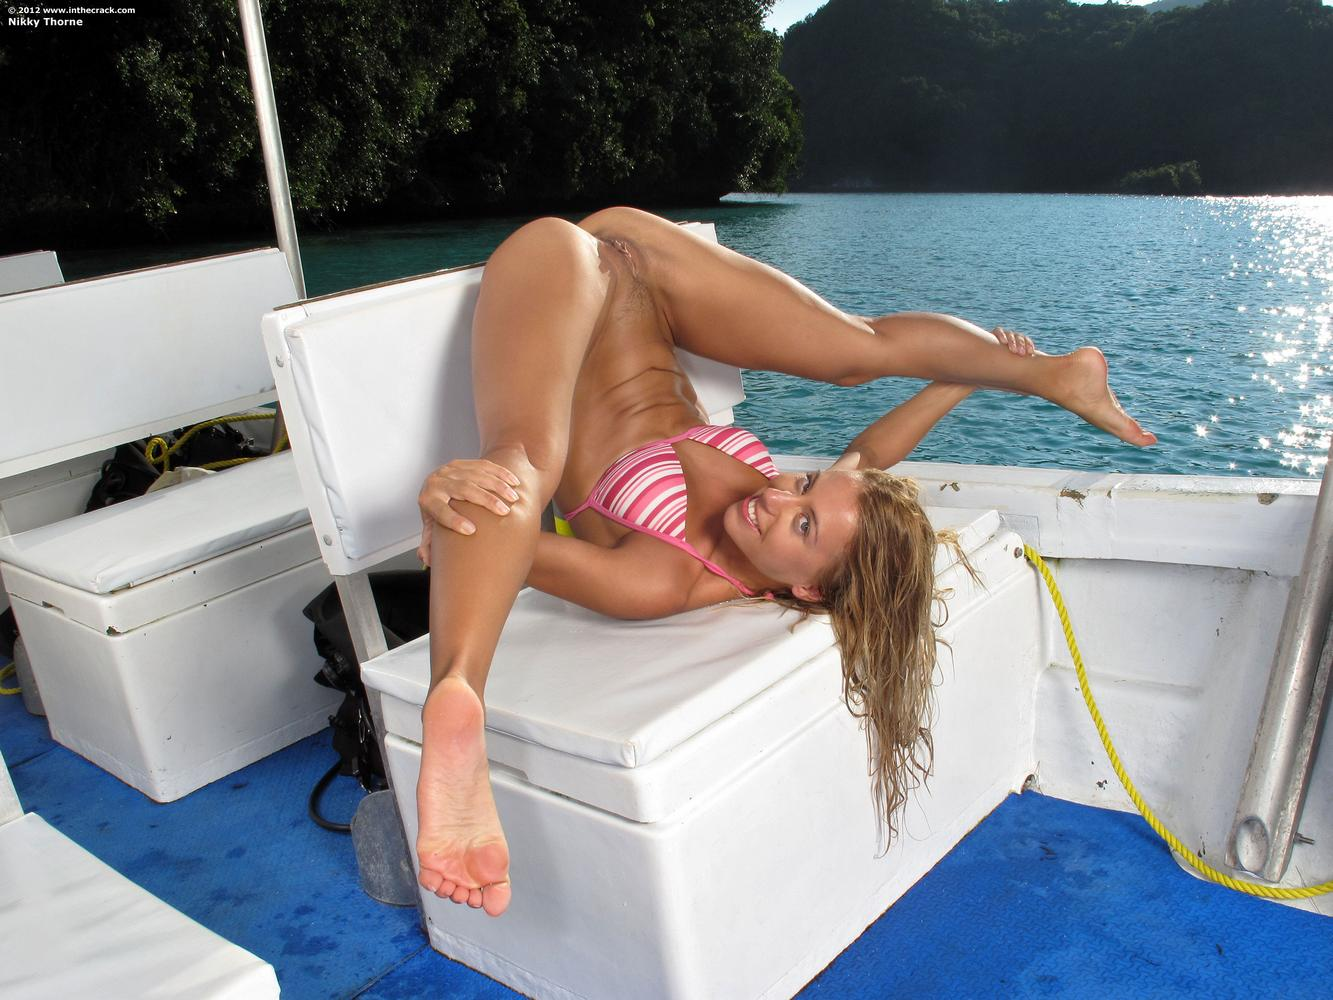 Cleared nikky thorne nude underwater scuba diving something is